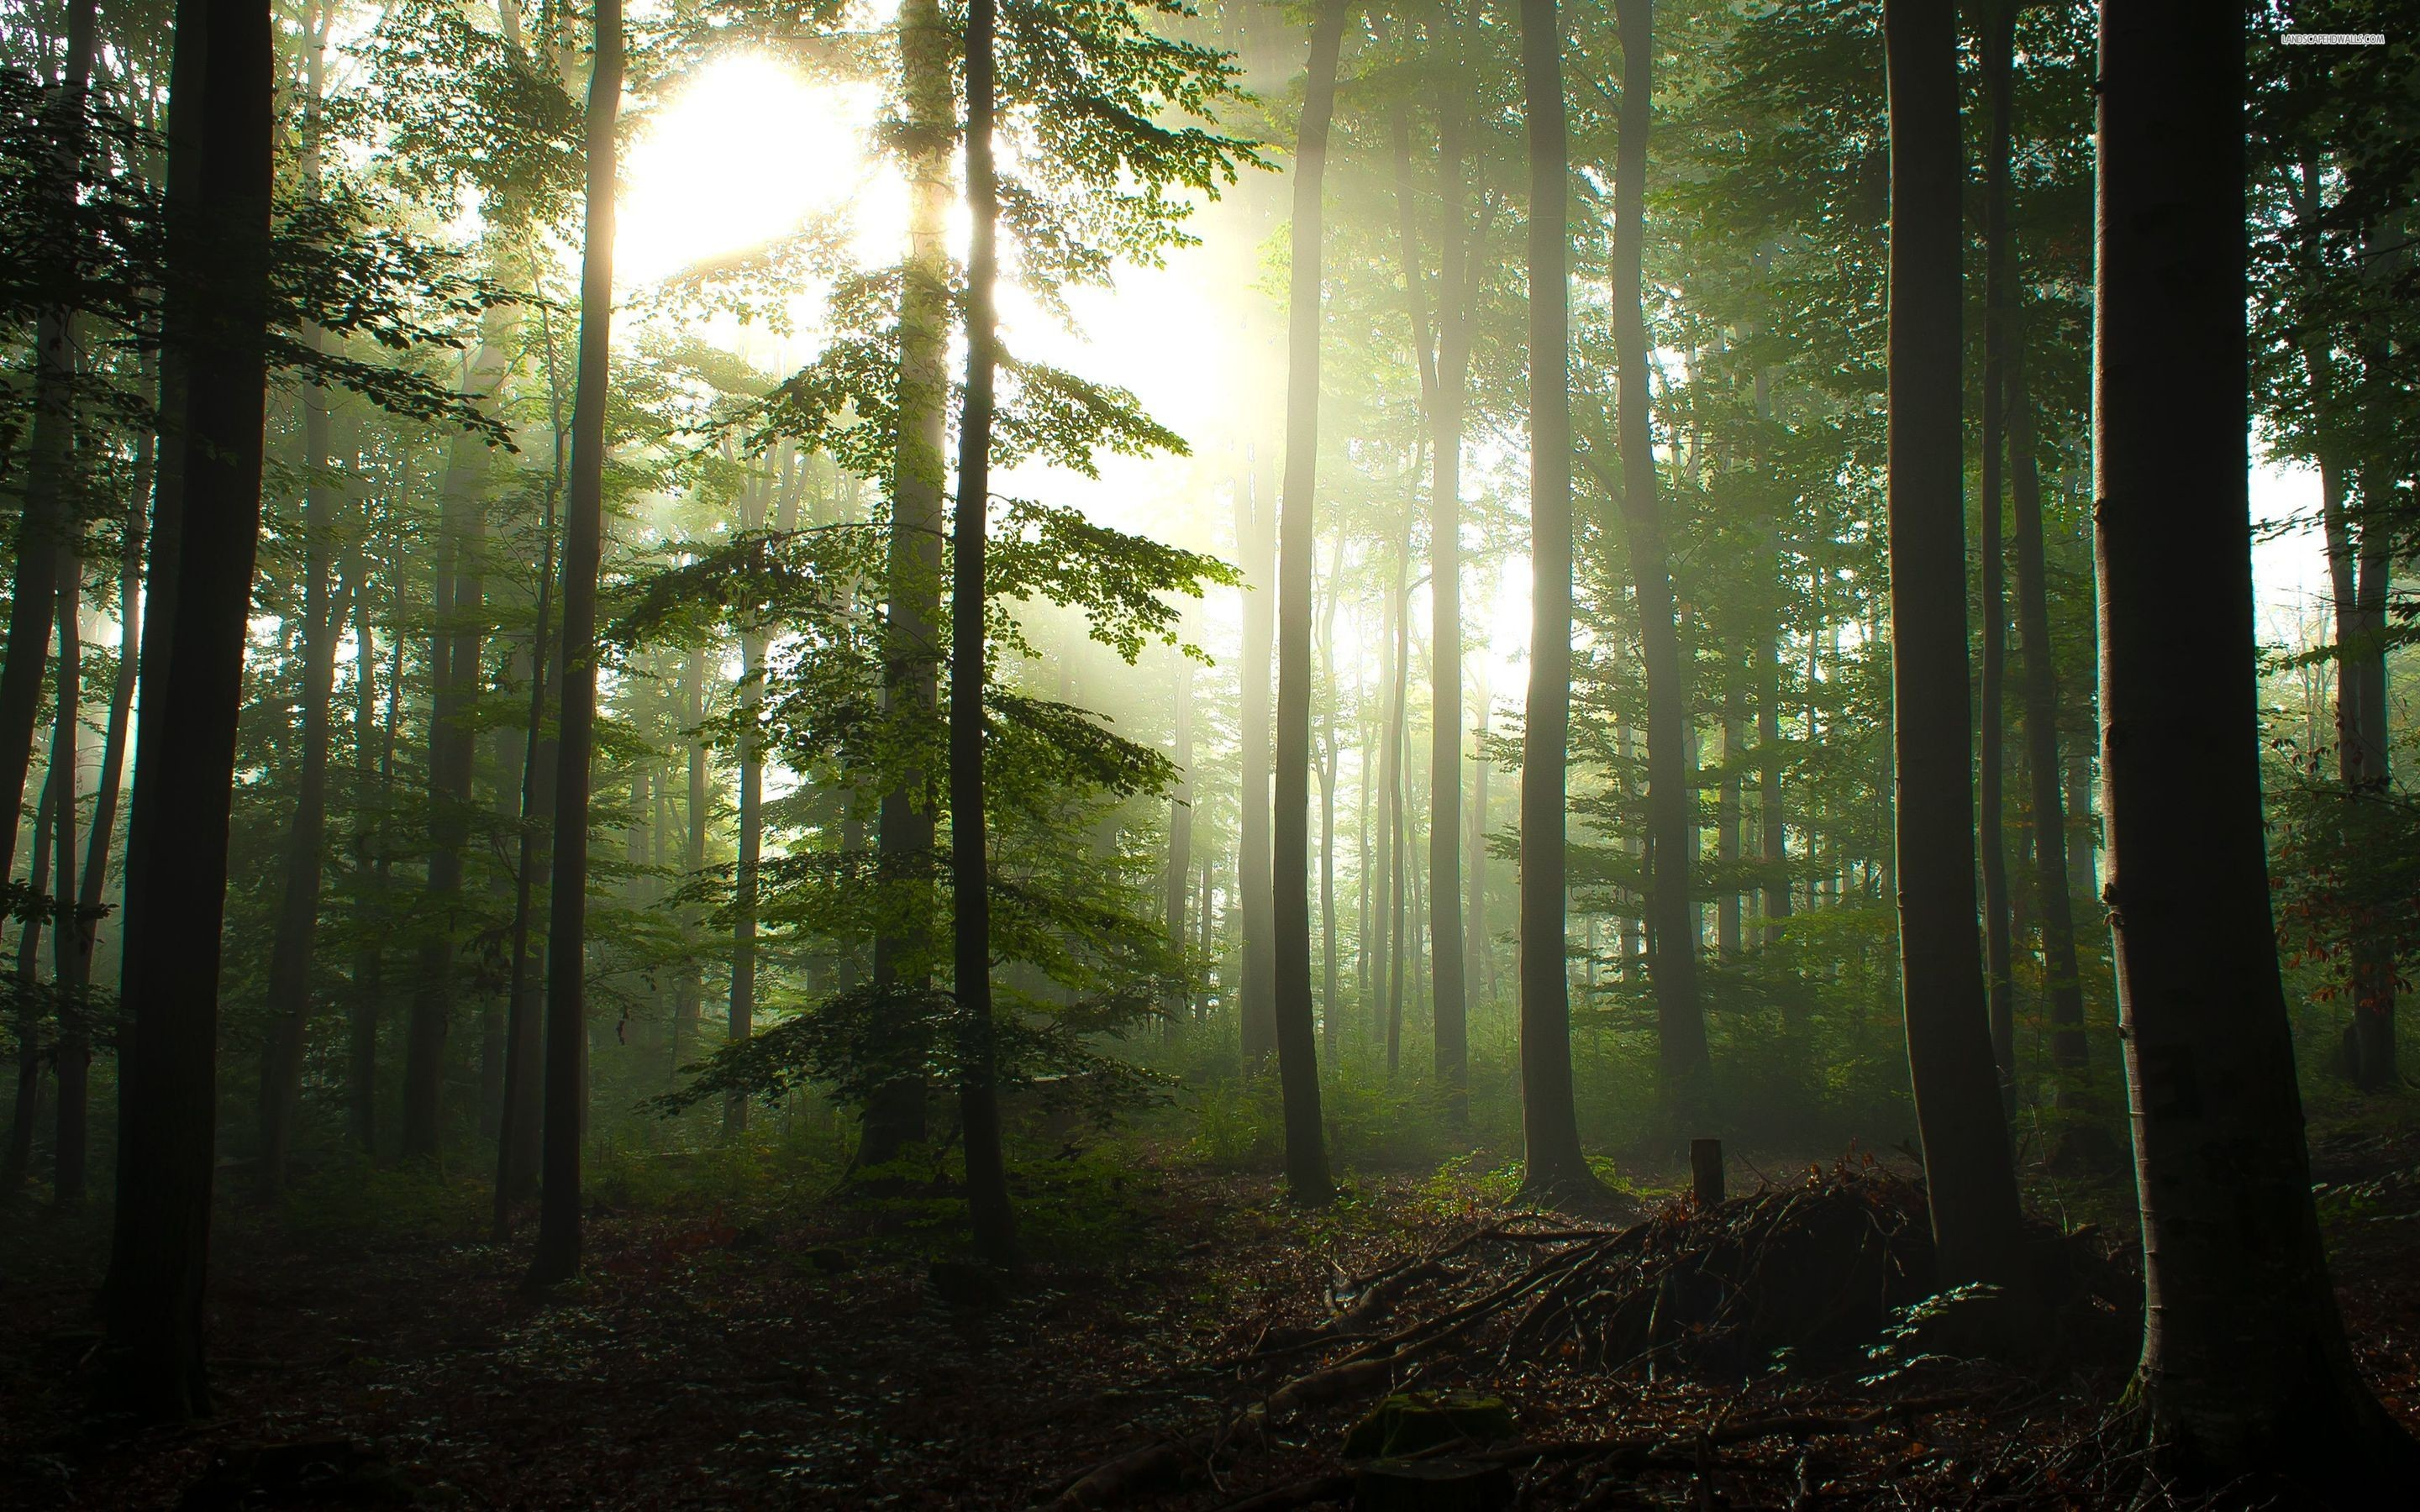 HD Forest wallpaper ·① Download free High Resolution ...